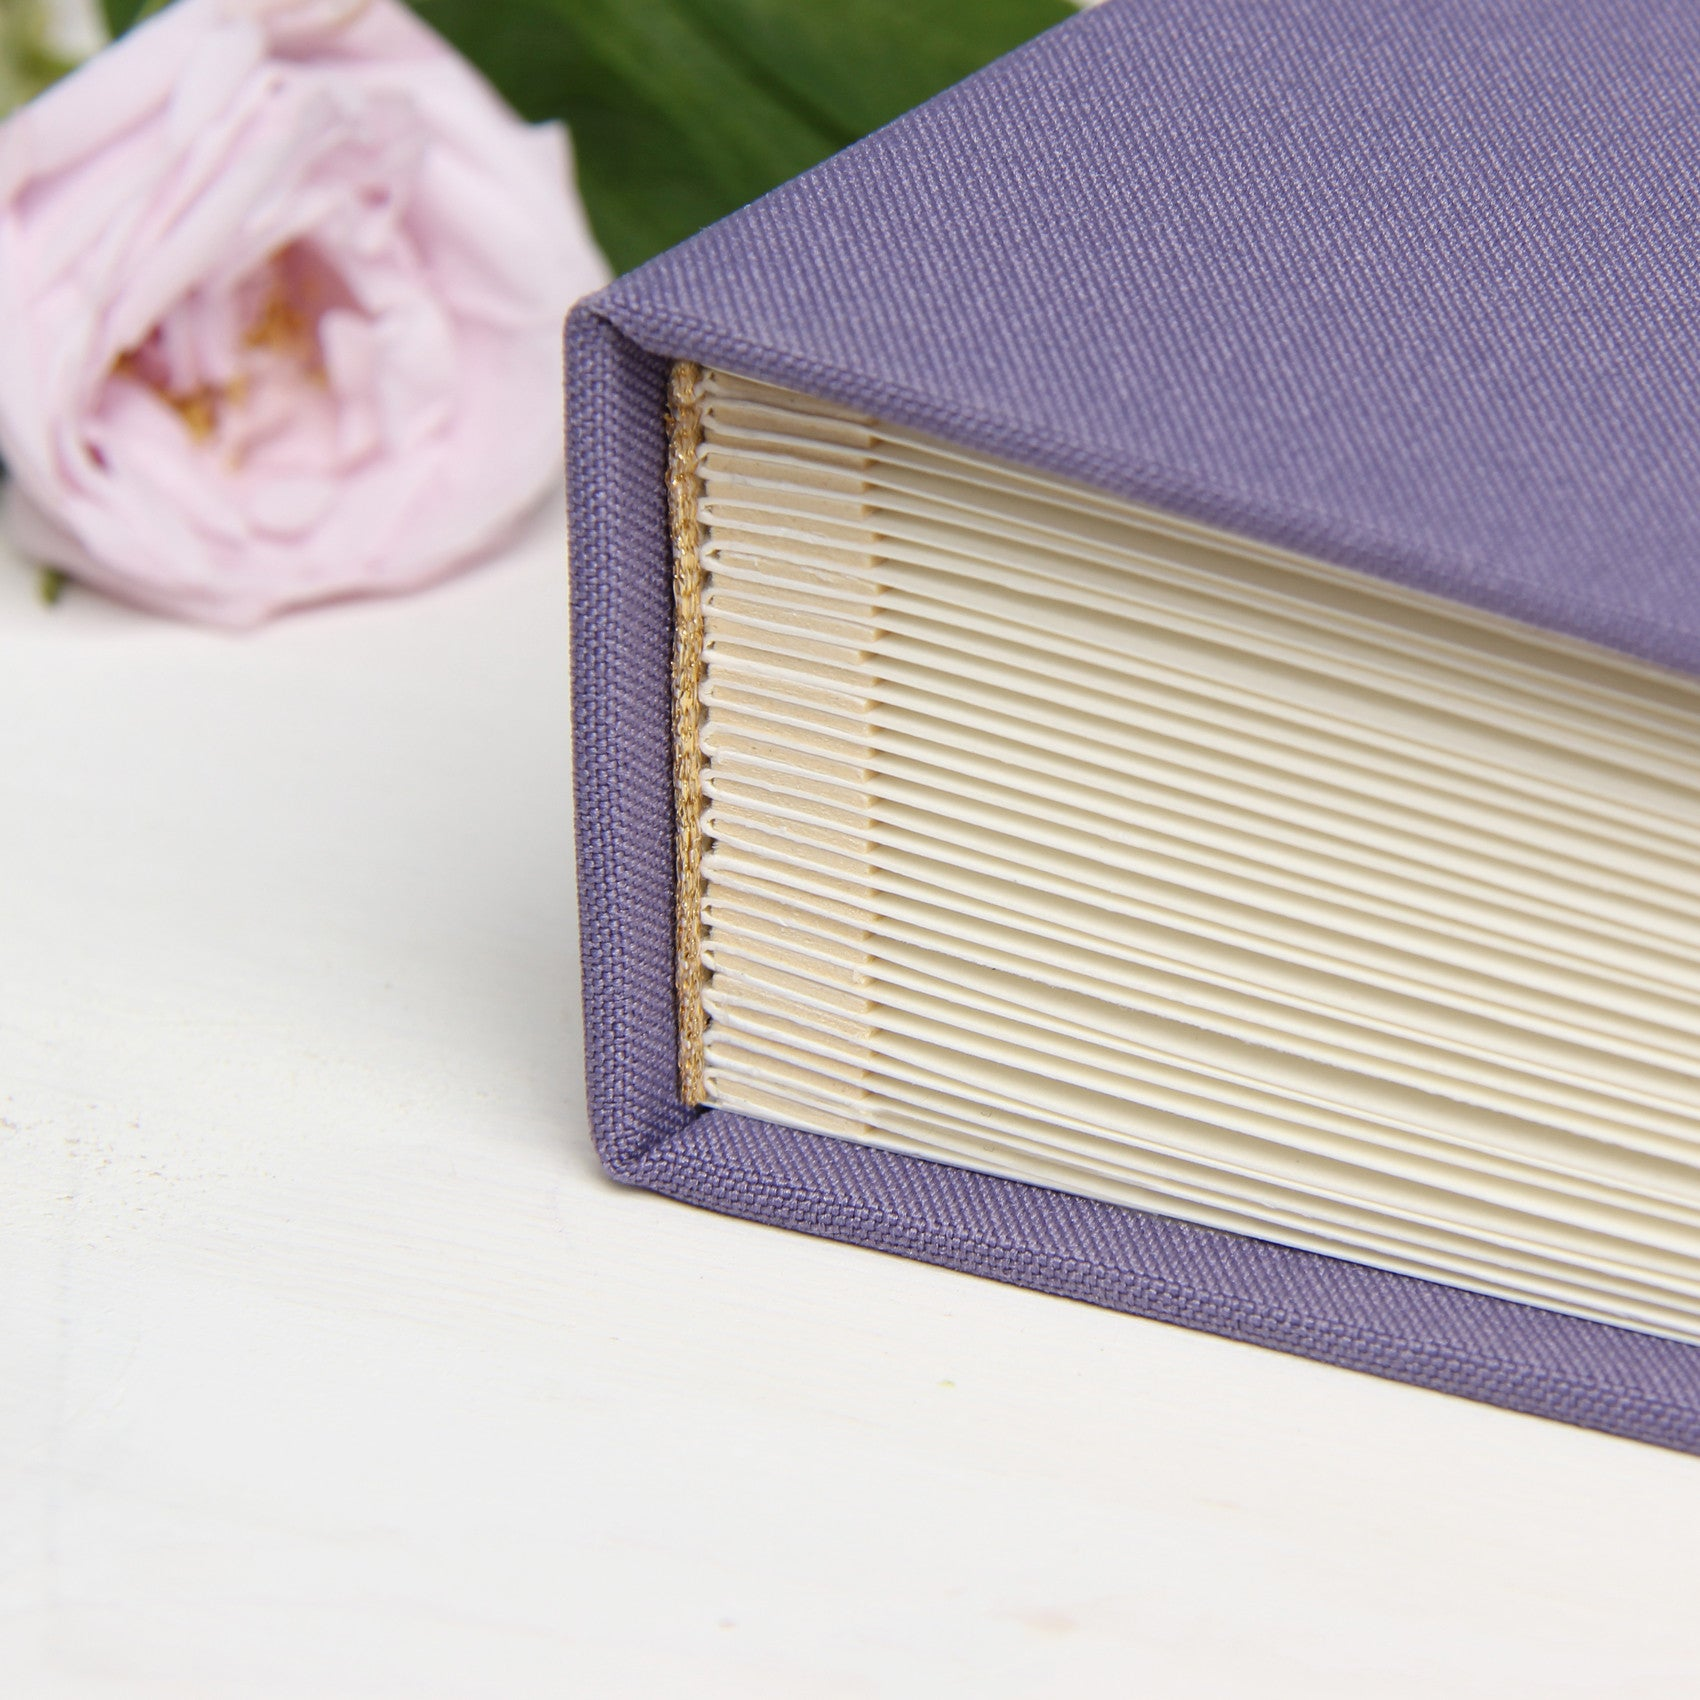 Instant Wedding Guest Book Album Levander with White Lettering by Liumy - Liumy